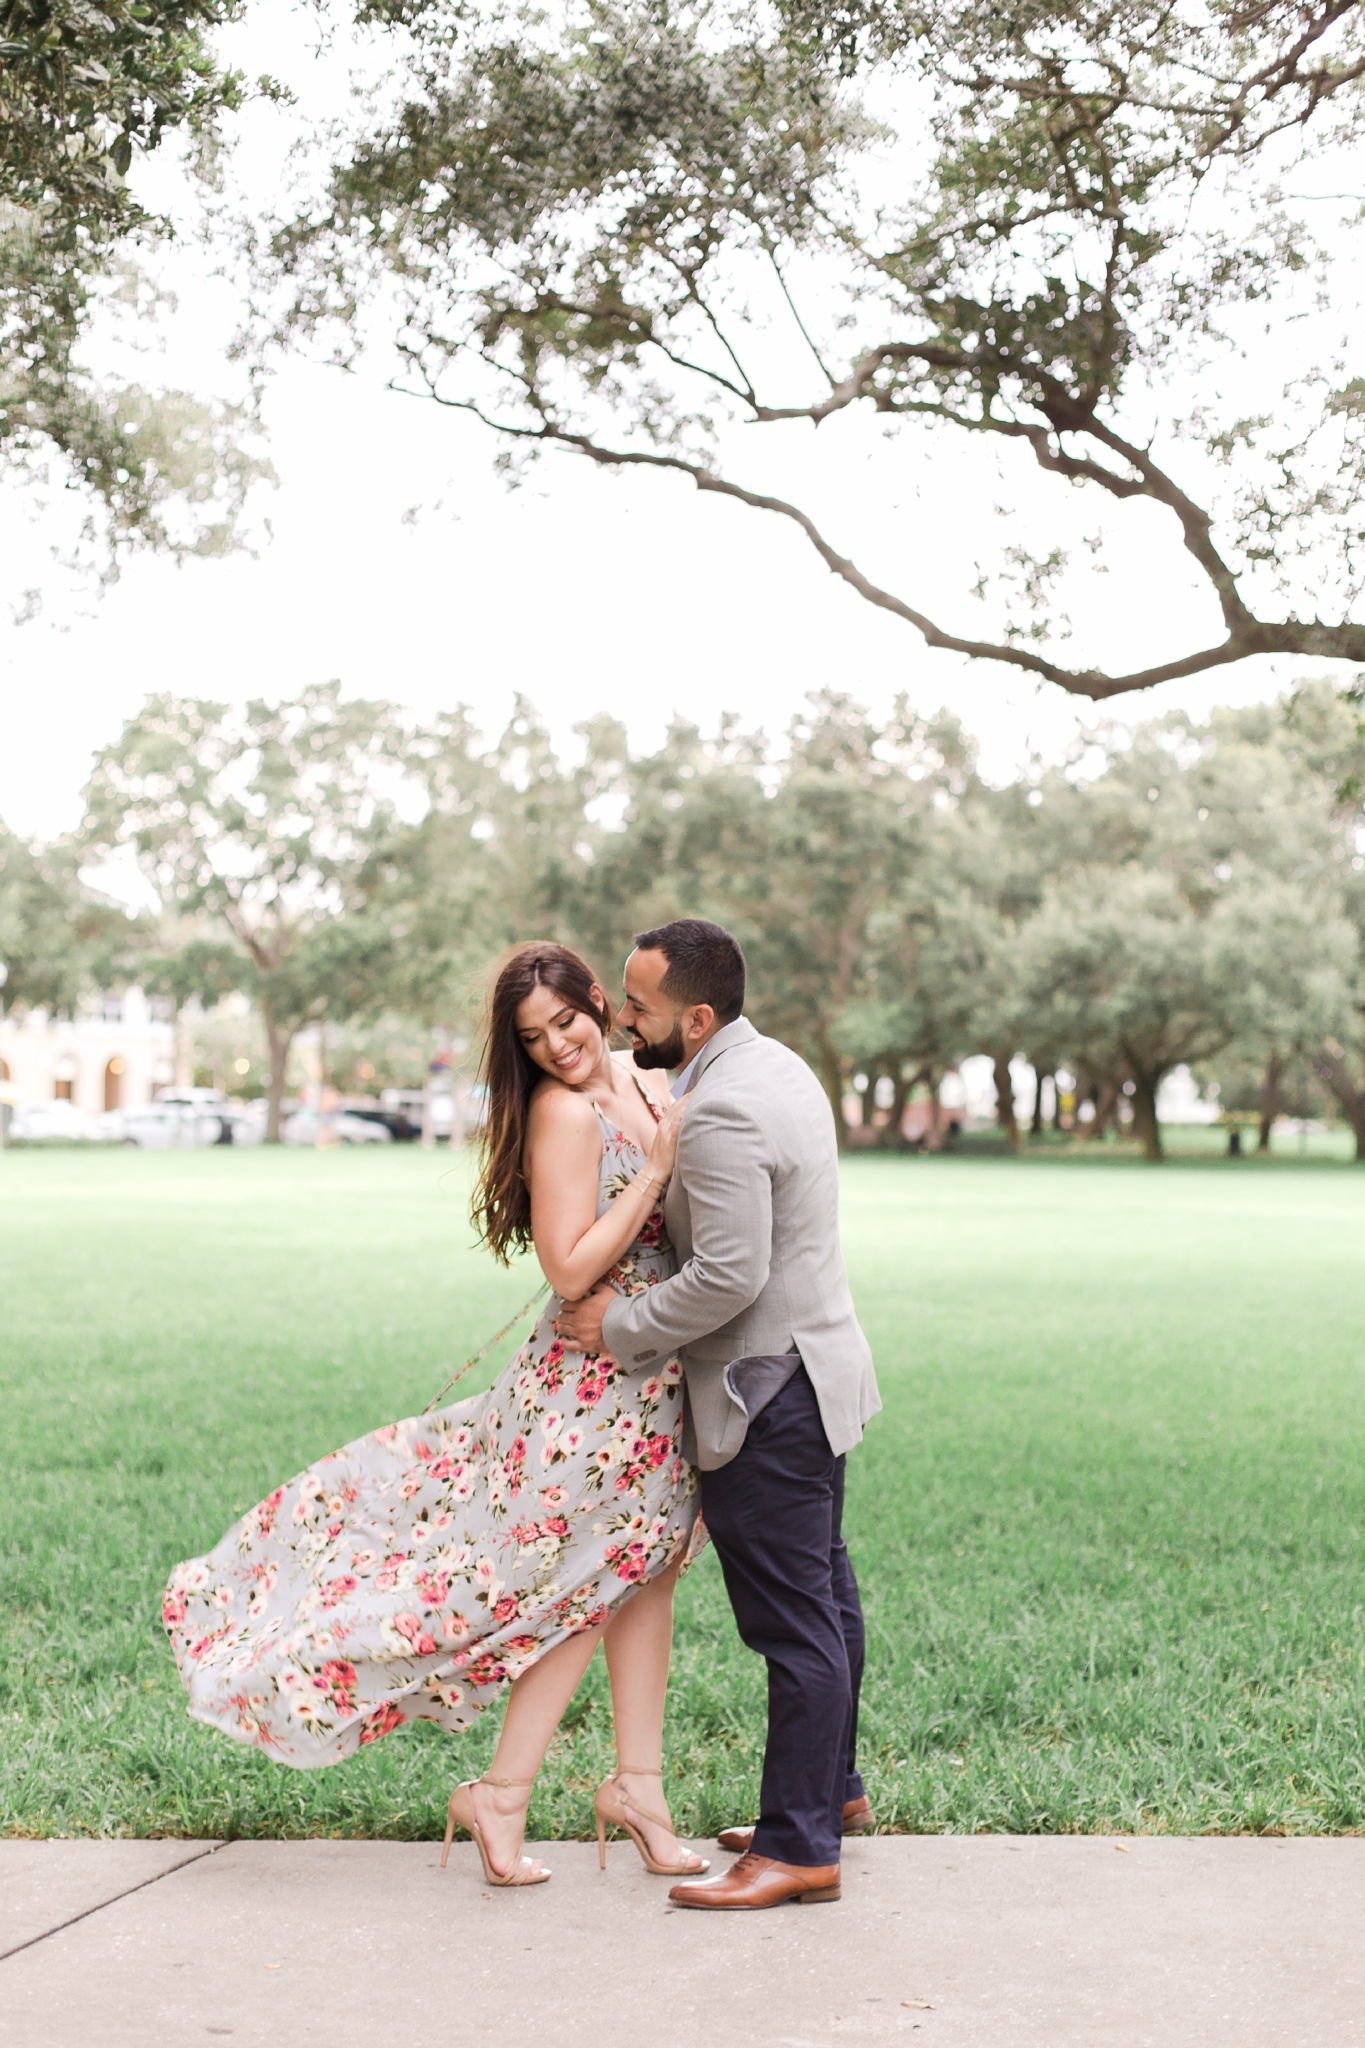 St-pete-florida-engagement-session-nicole-mike-I58A6756.jpg